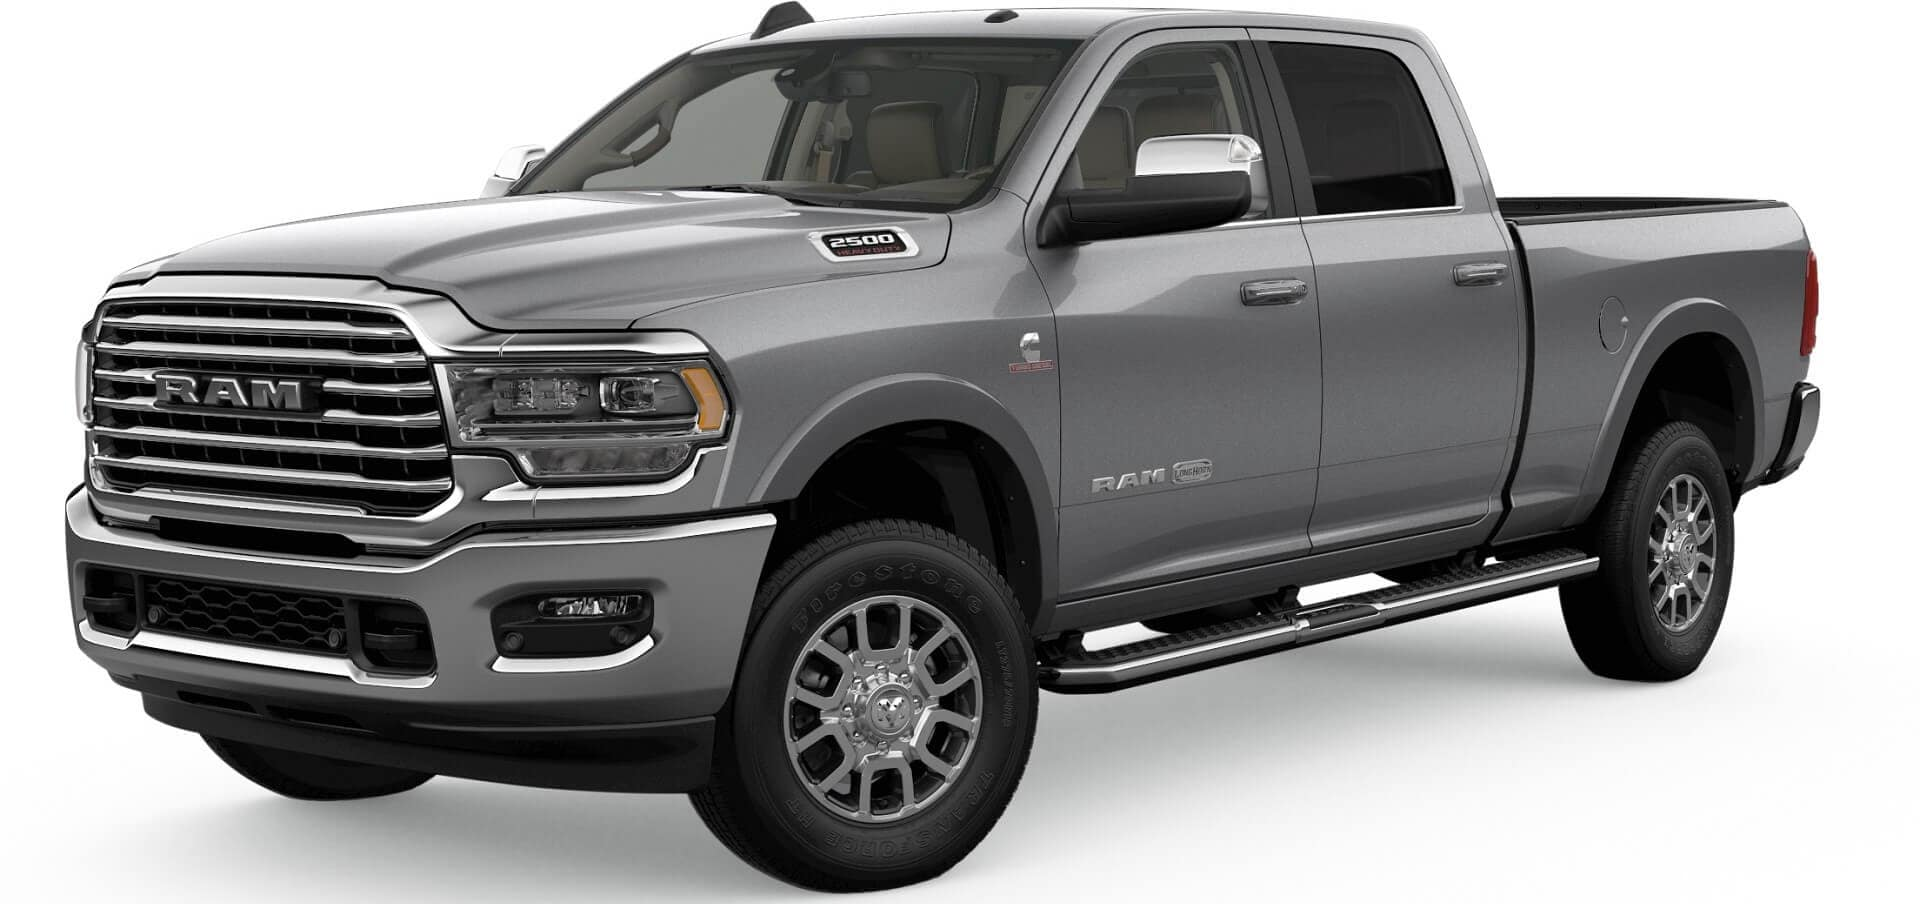 2021 Ram 2500 Review Findlay OH